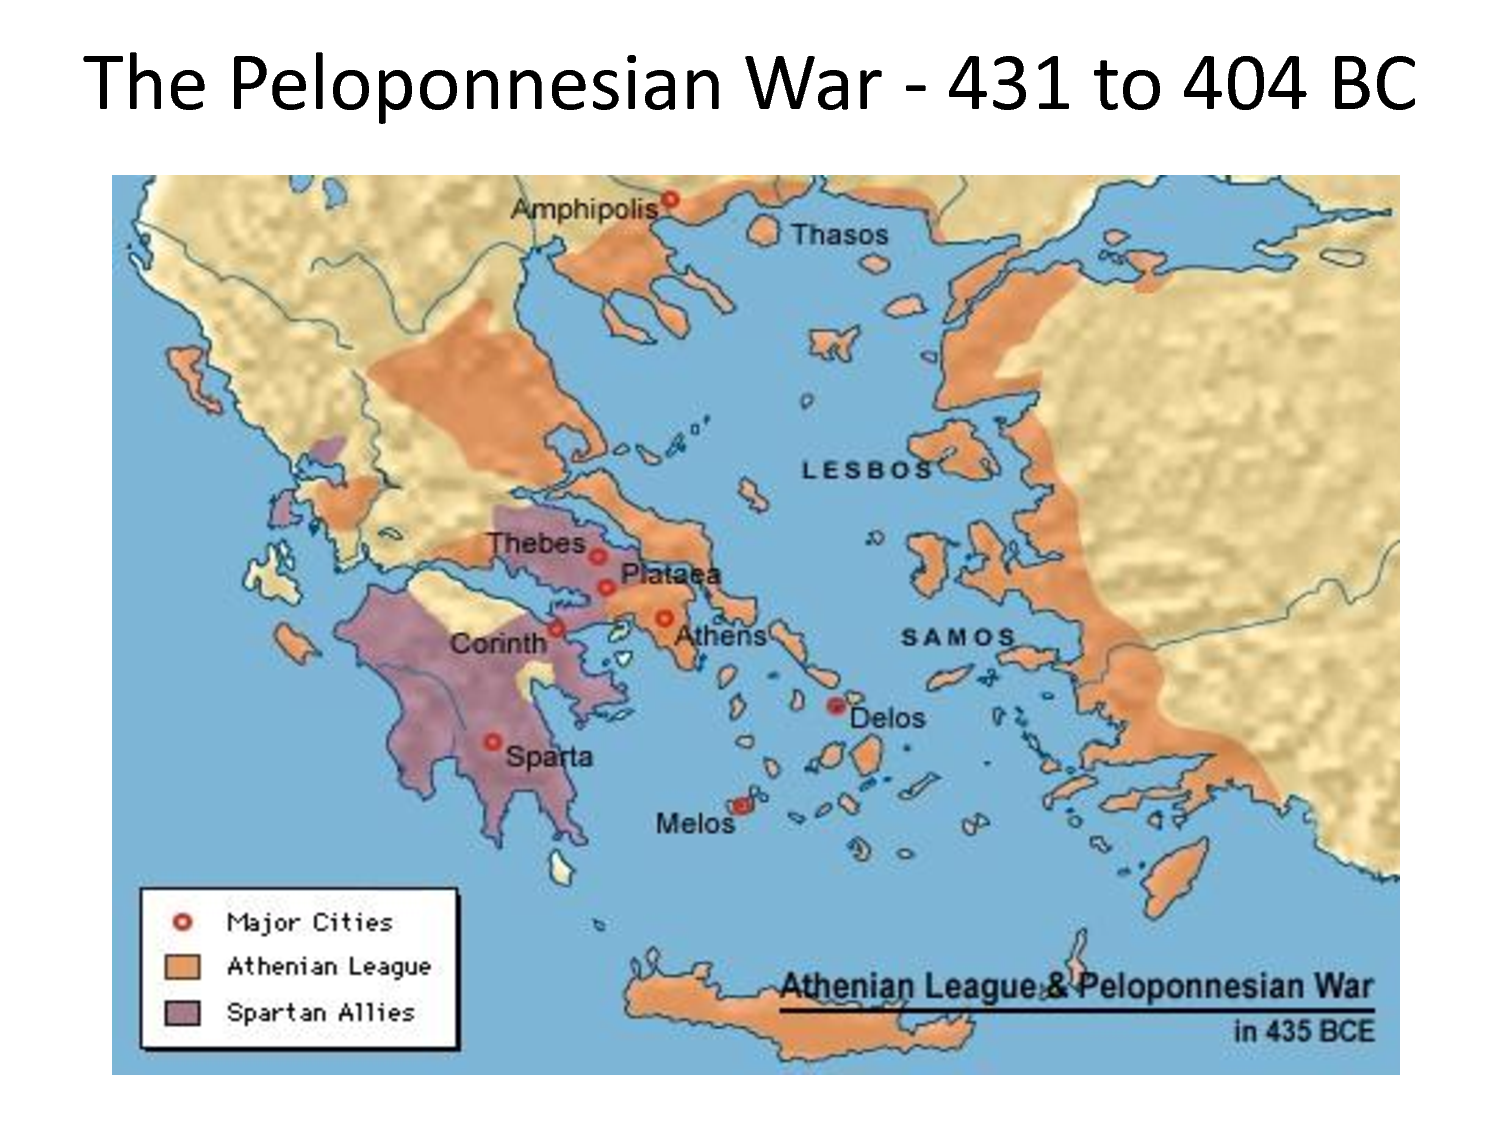 What Happened in Greece After the Peloponnesian War?